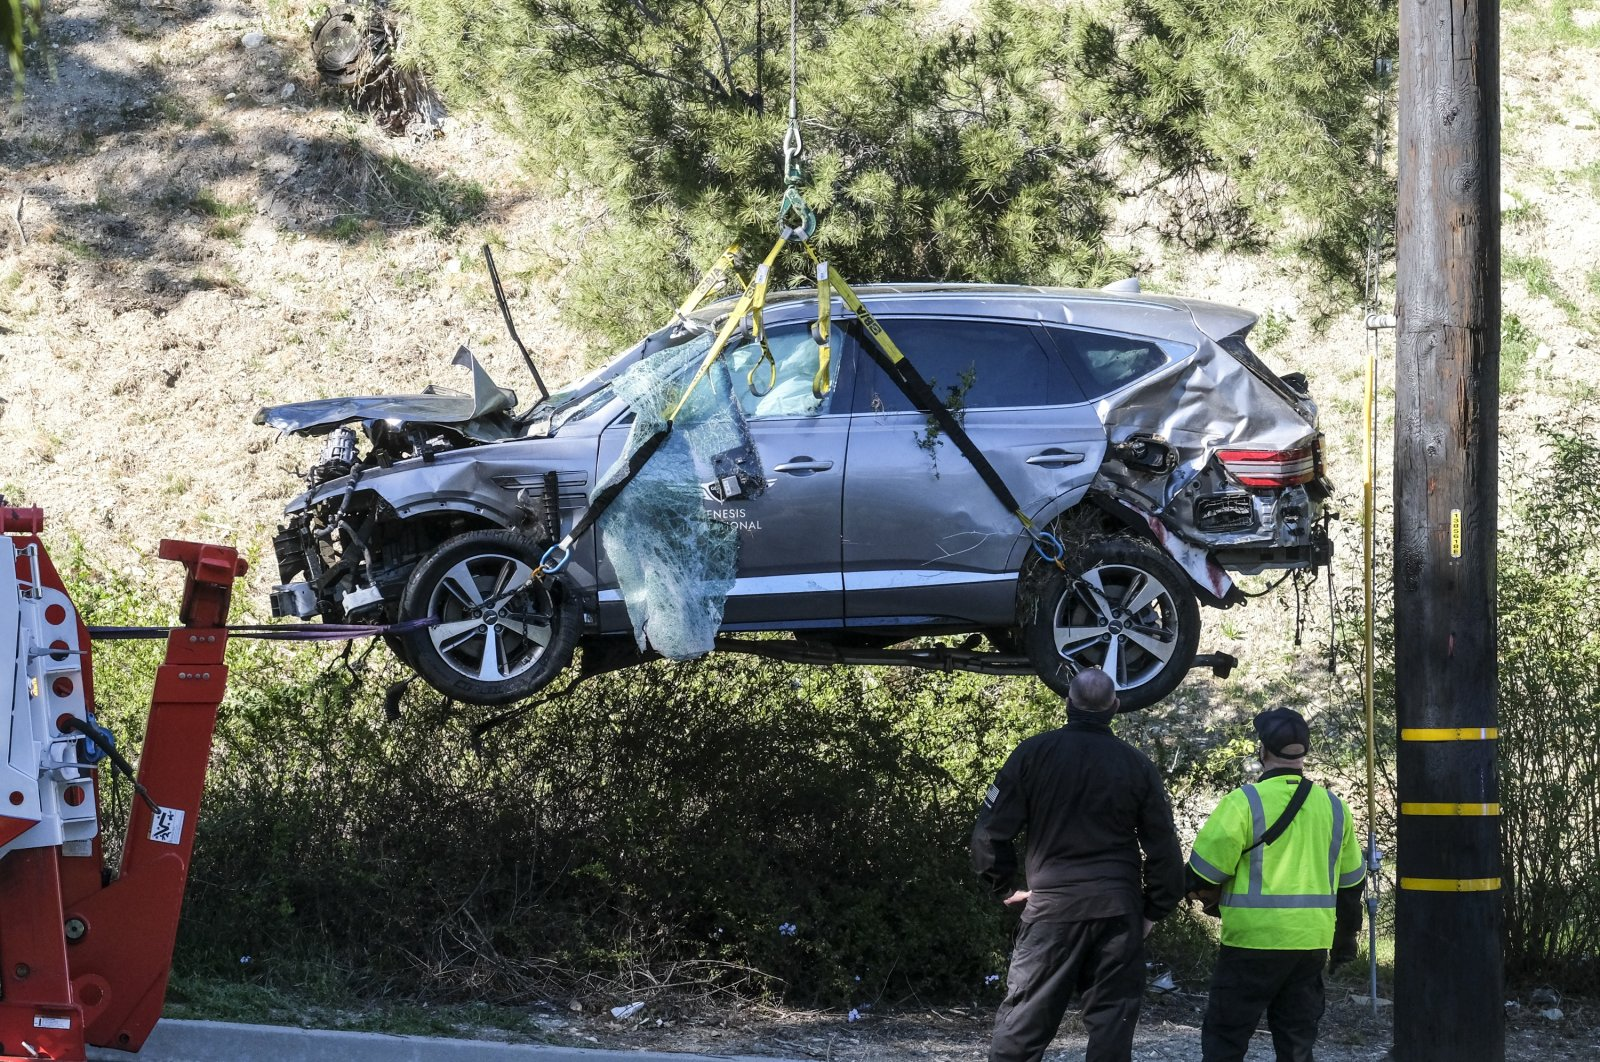 A crane is used to life a vehicle following an accident involving golfer Tiger Woods, in the Rancho Palos Verdes suburb of Los Angeles, California, U.S., Feb. 23, 2021. (AP Photo)